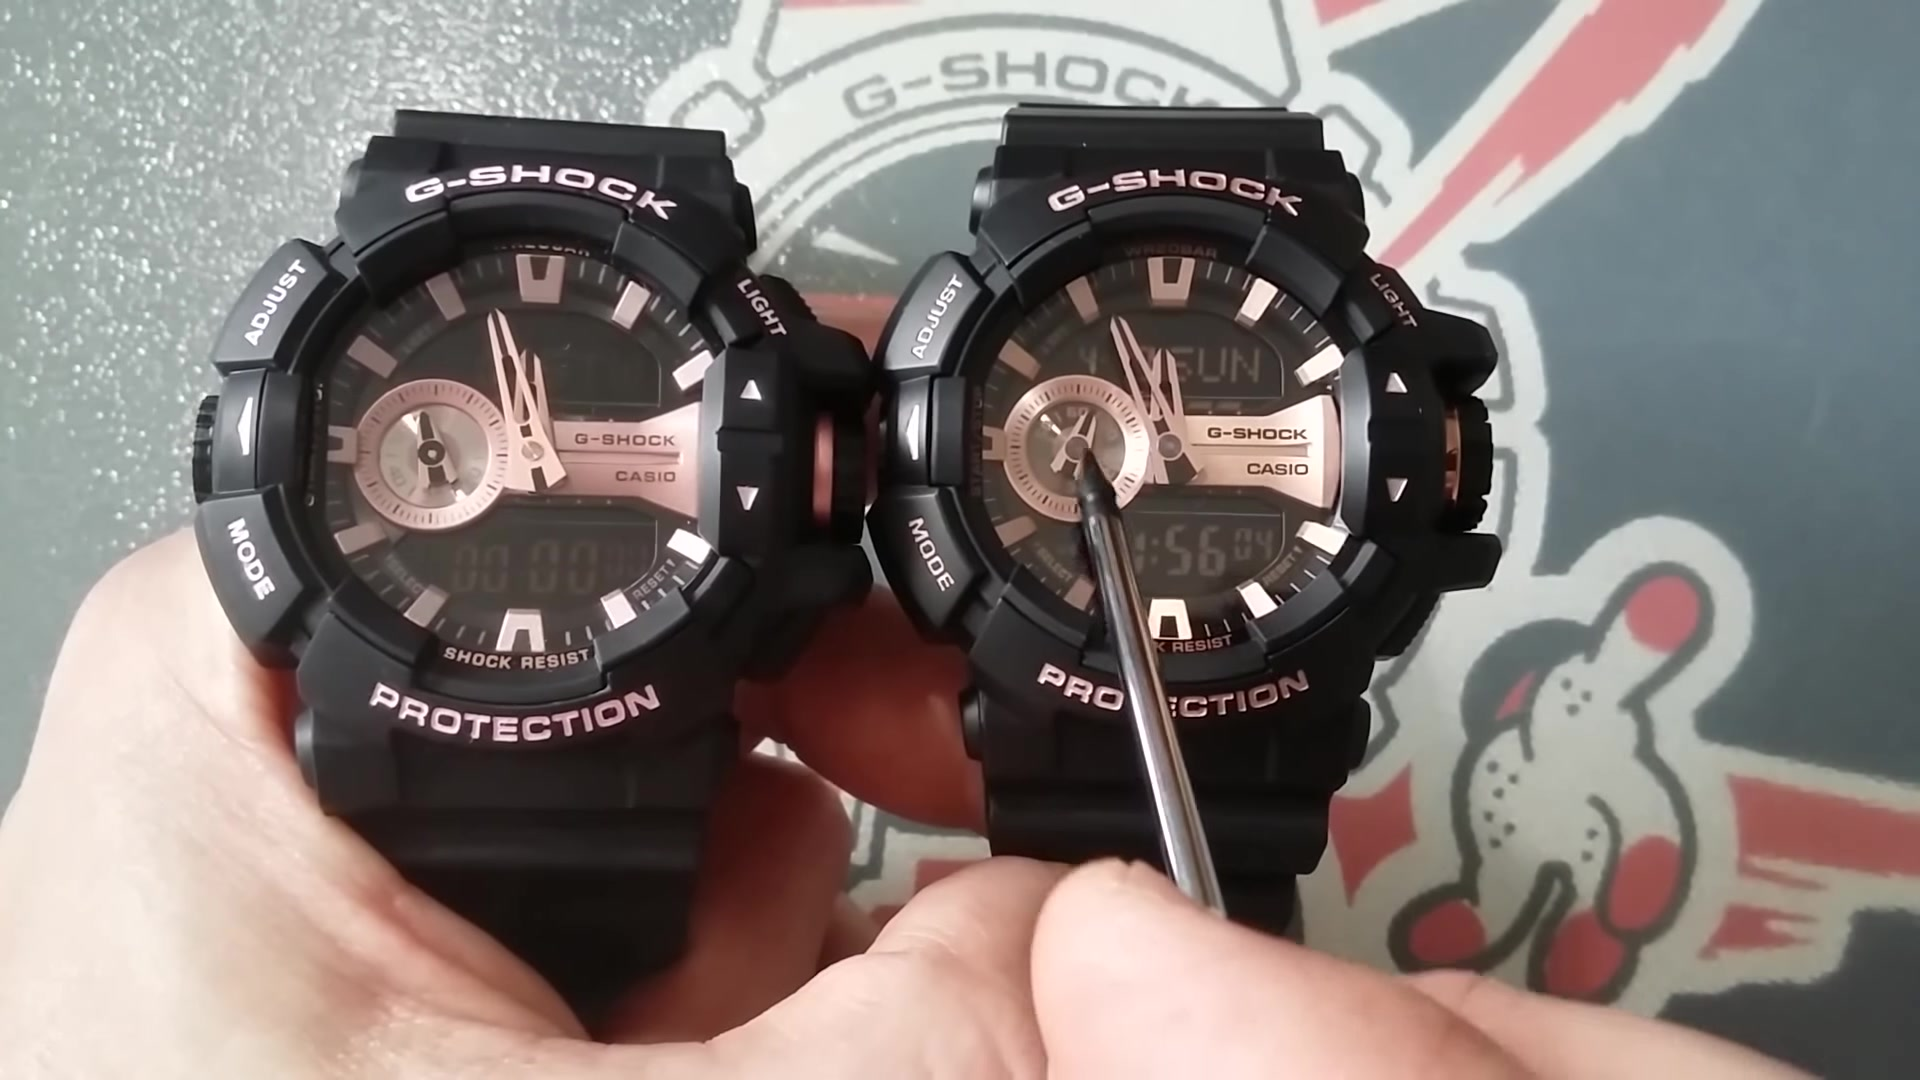 cach-phan-biet-dong-ho-g-shock-chinh-hang-va-g-shock-fake-hop-GA-400-replica-G-Shock-GA-400-real